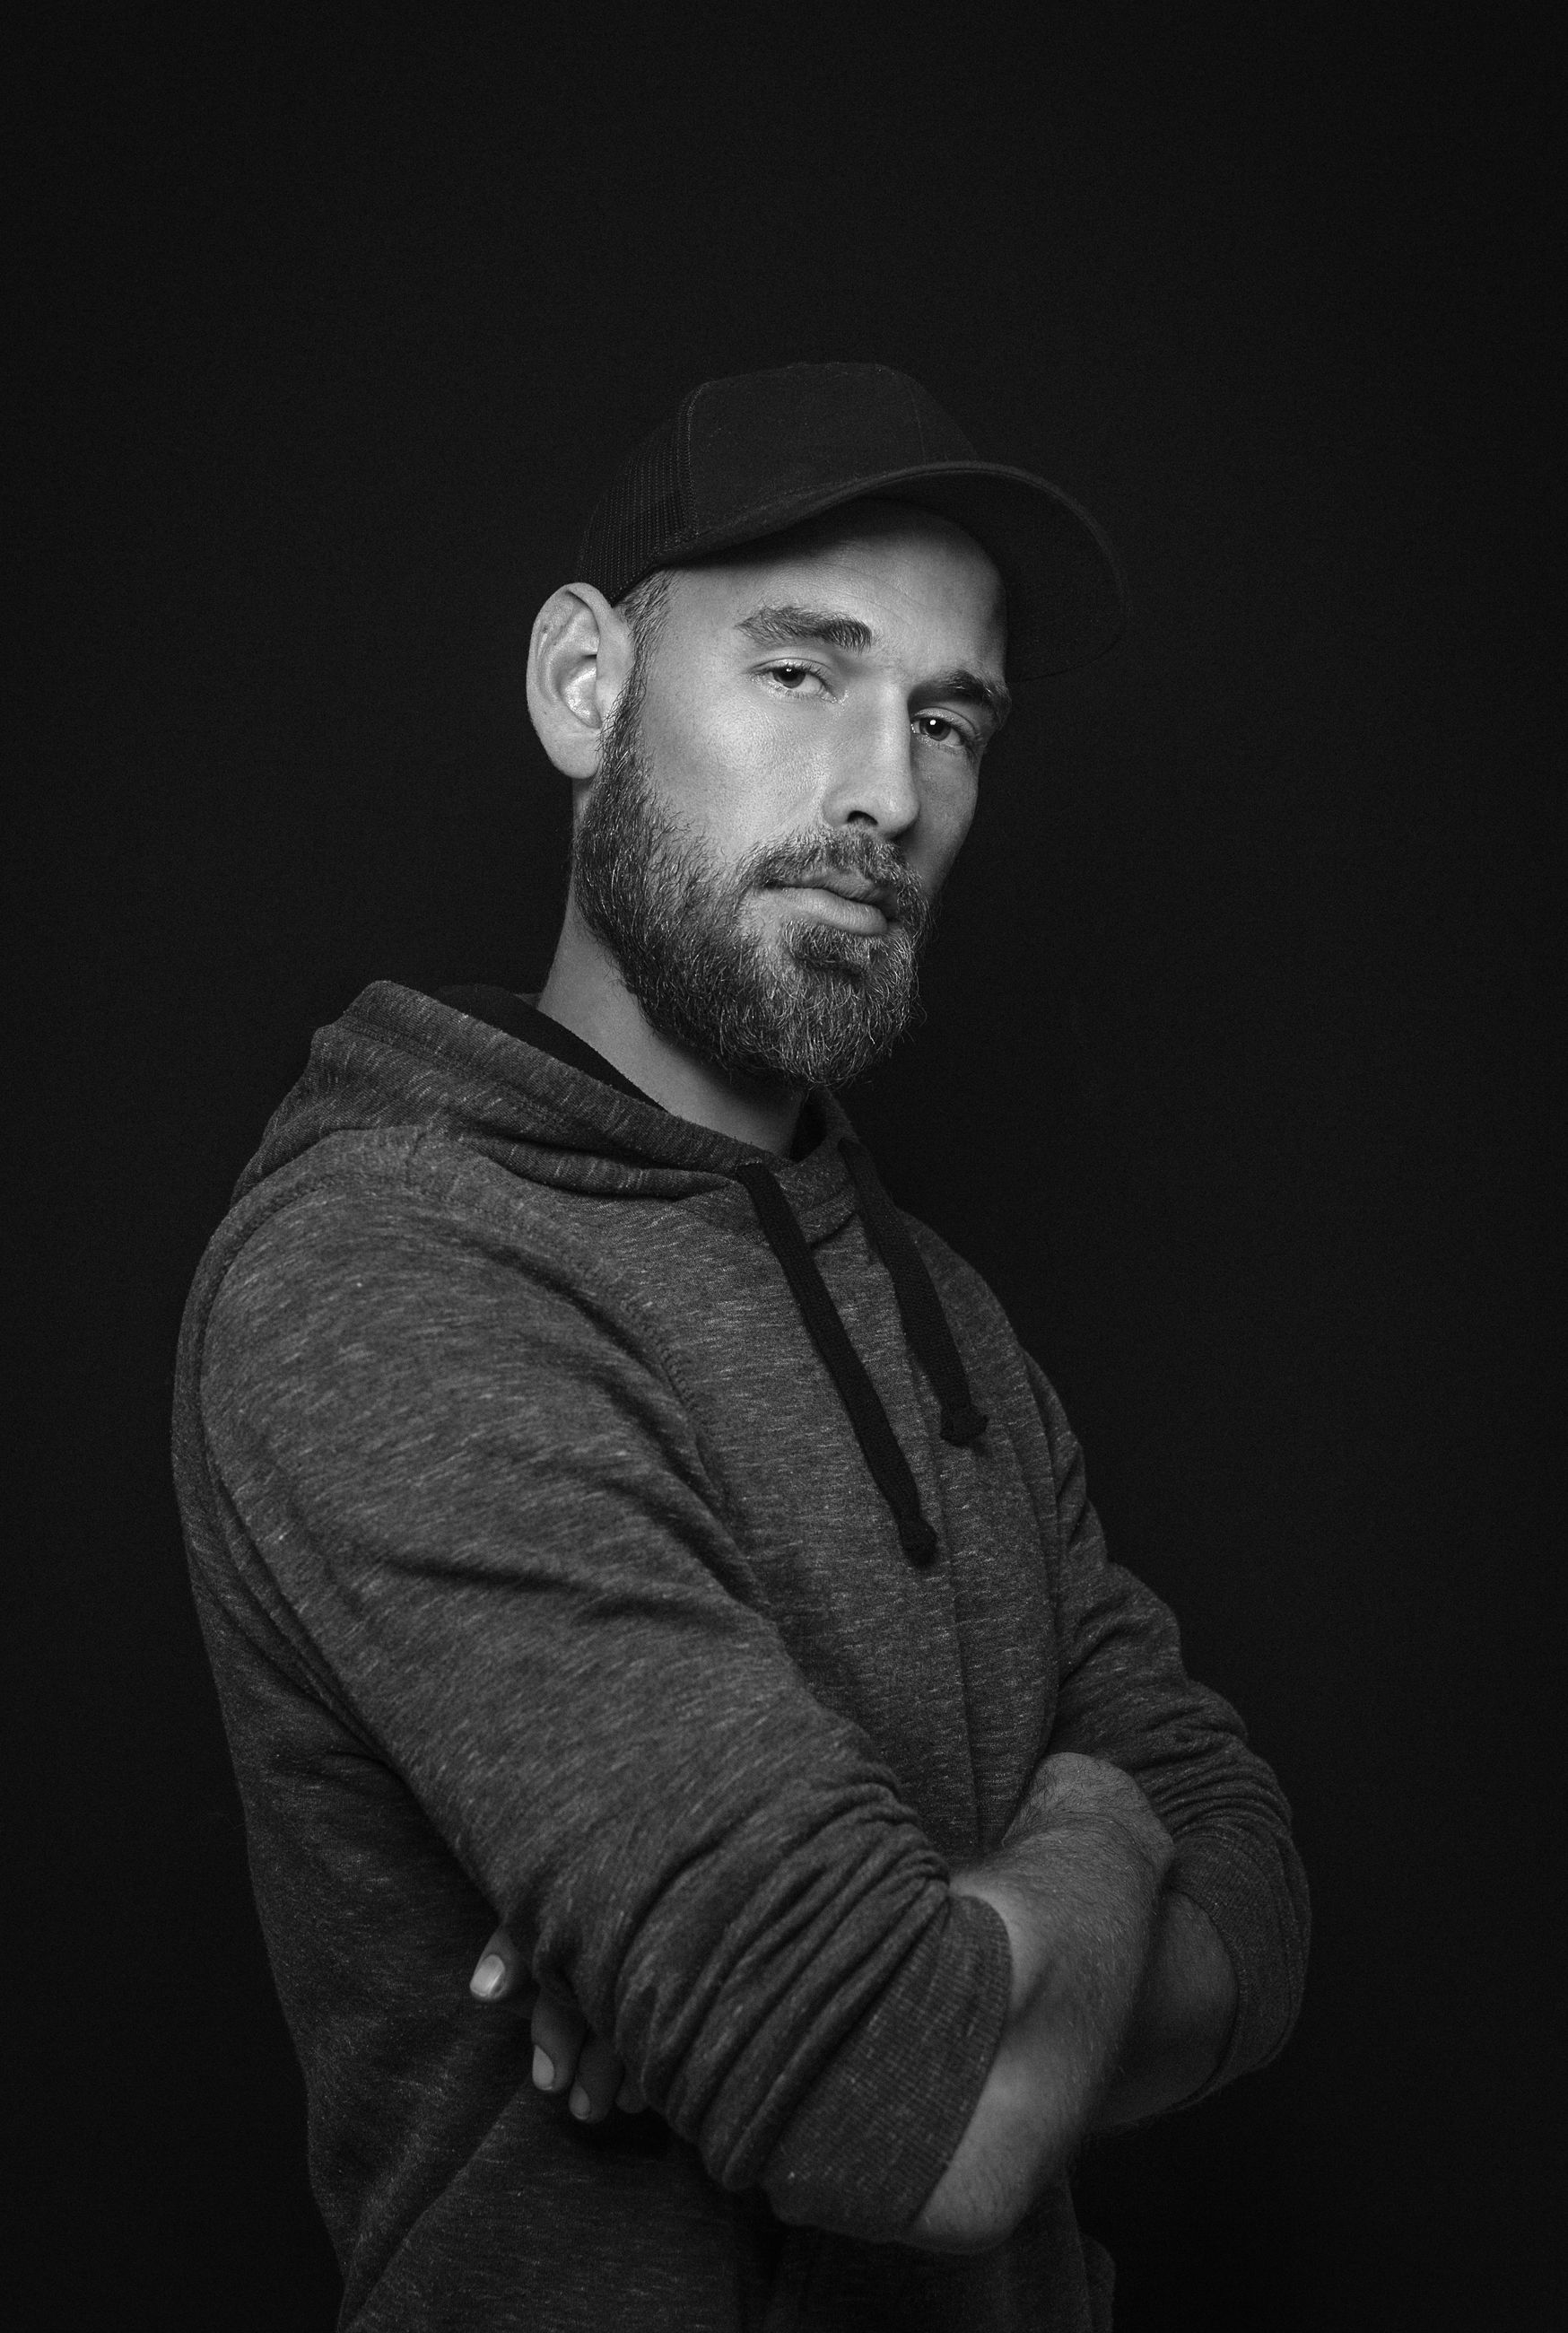 young men, clothing, one person, young adult, waist up, standing, beard, facial hair, studio shot, hat, indoors, arms crossed, front view, looking at camera, portrait, lifestyles, men, black background, warm clothing, contemplation